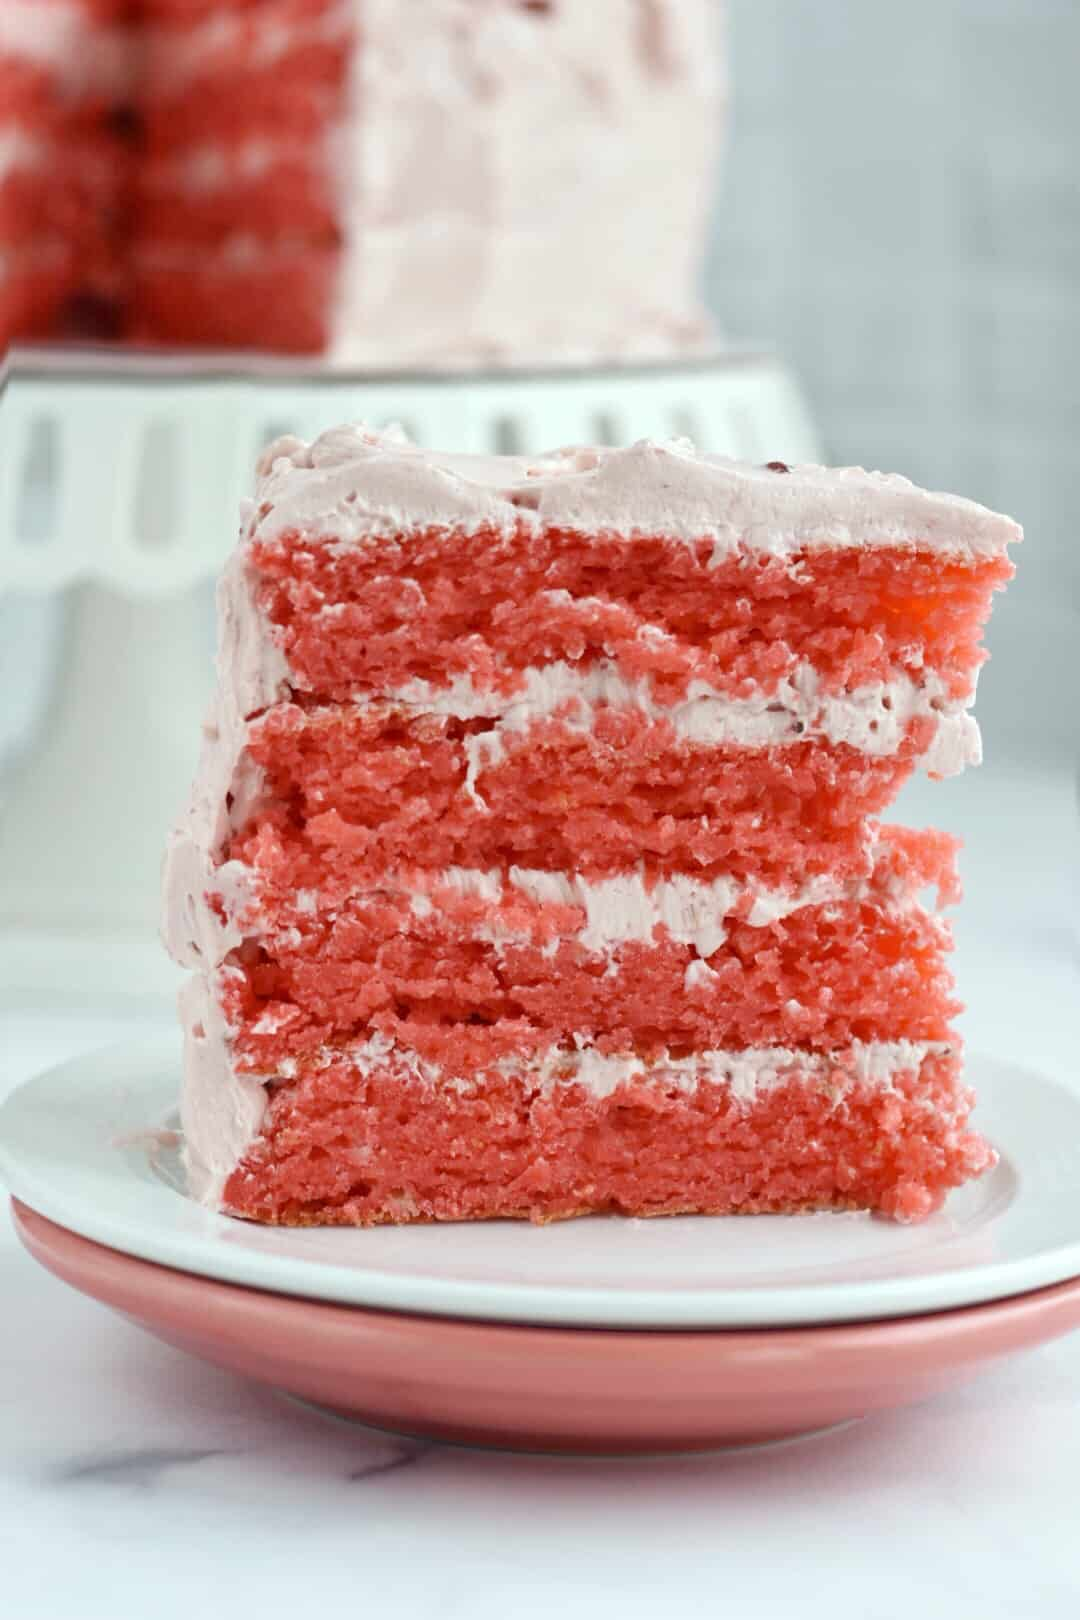 closeup of strawberry cake on plate